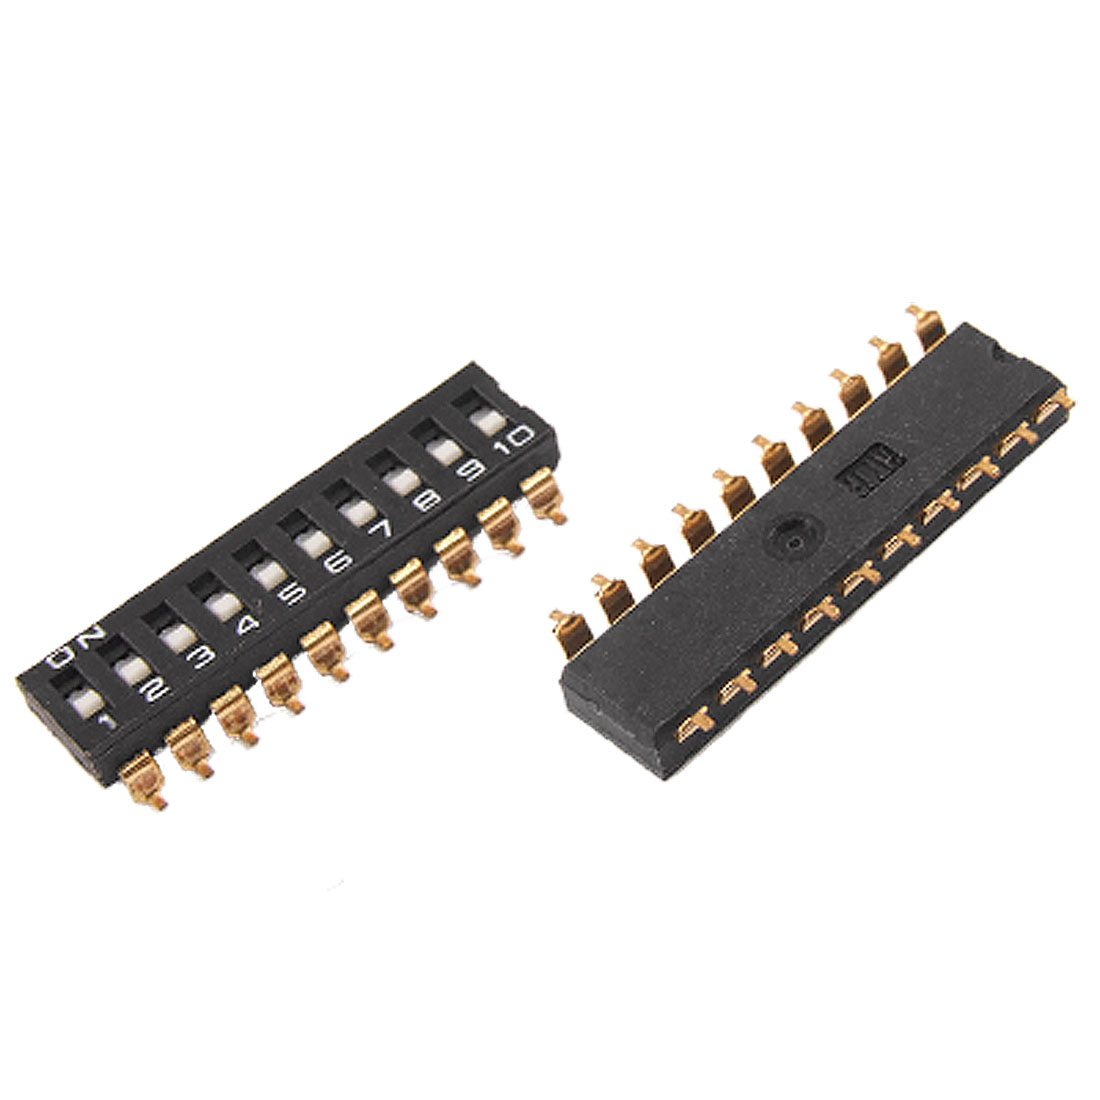 2 Pcs 2.54mm Pitch 10 Position Way Gold Tone 20 Pin SMD SMT DIP Switch Black